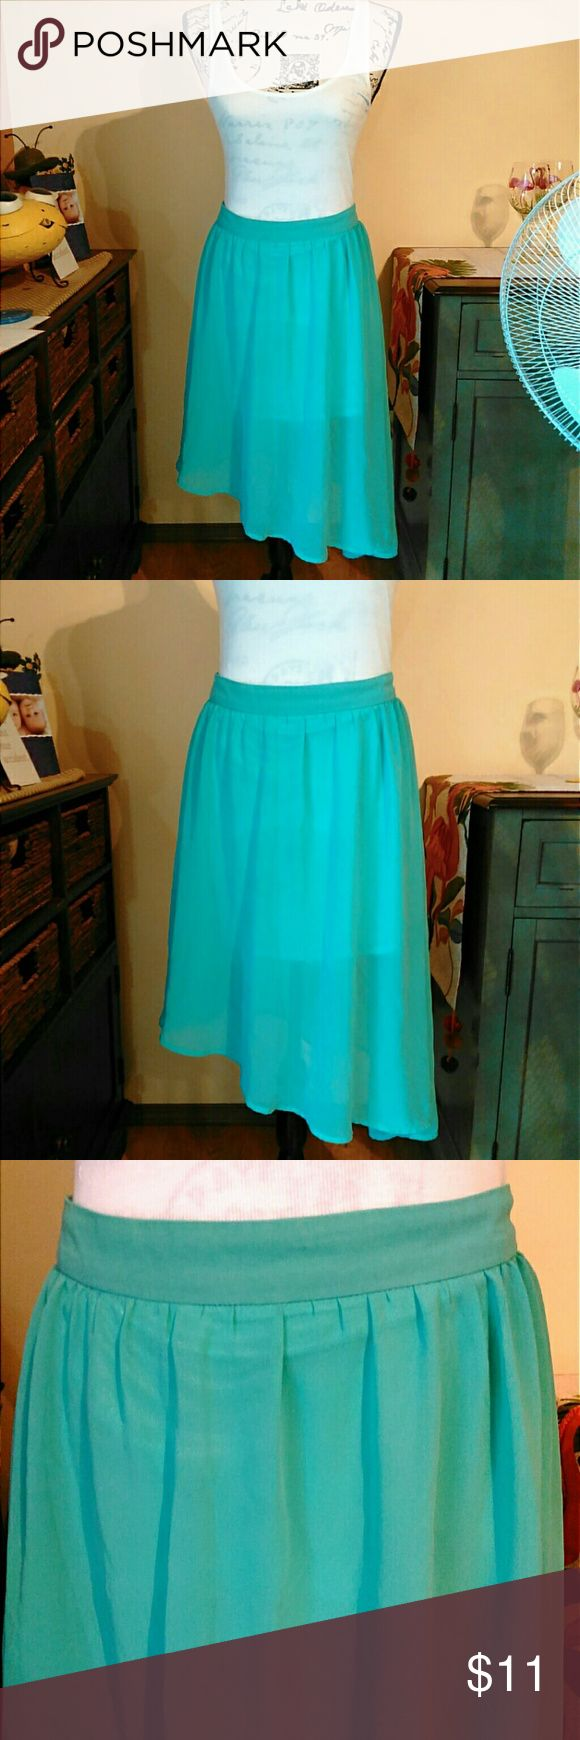 Turquoise Midi Skirt Soft and light turquoise shirt, hangs longer on one side. Keep in mind that forever 21 runs kind of small. 100% polyester. Measurements upon request! Forever 21 Skirts Midi